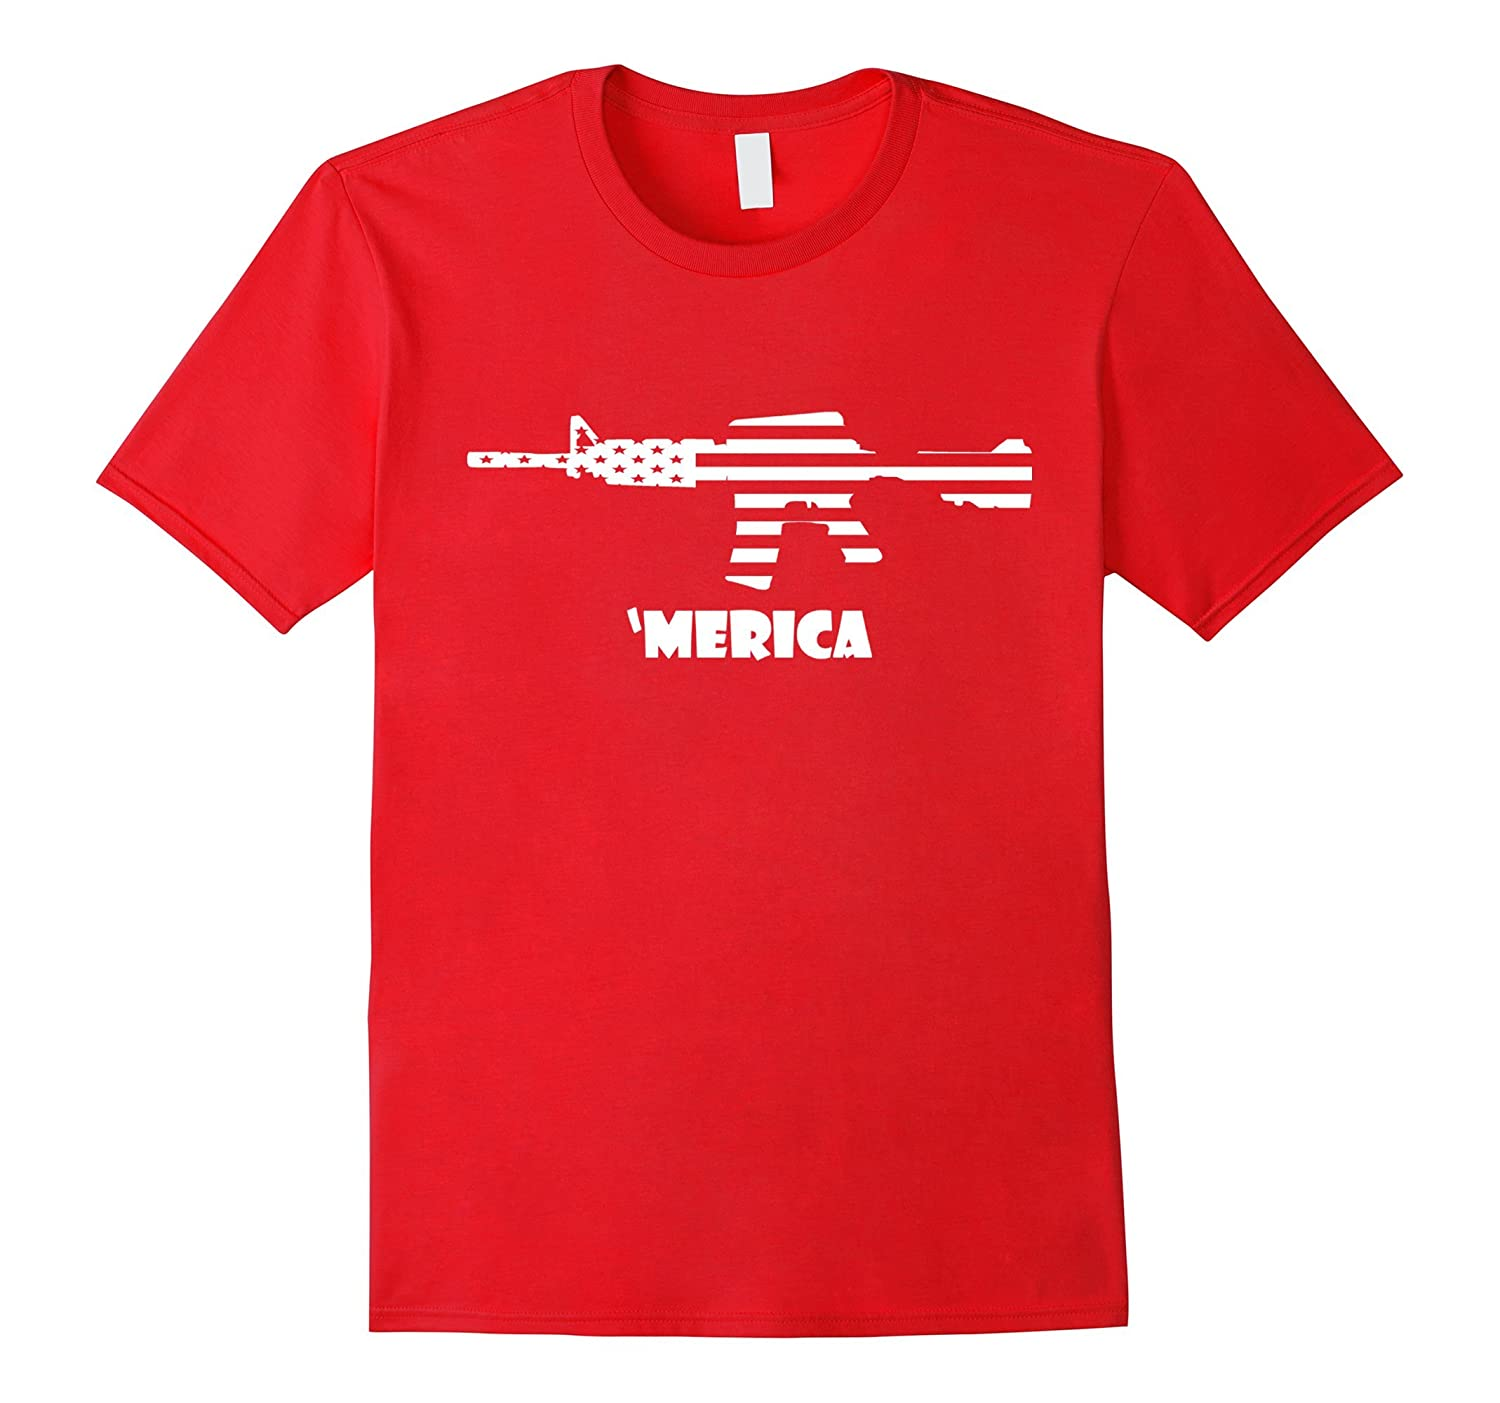 'Merica T Shirt - Funny T Shirt for 4th of July - Patriotic-TH